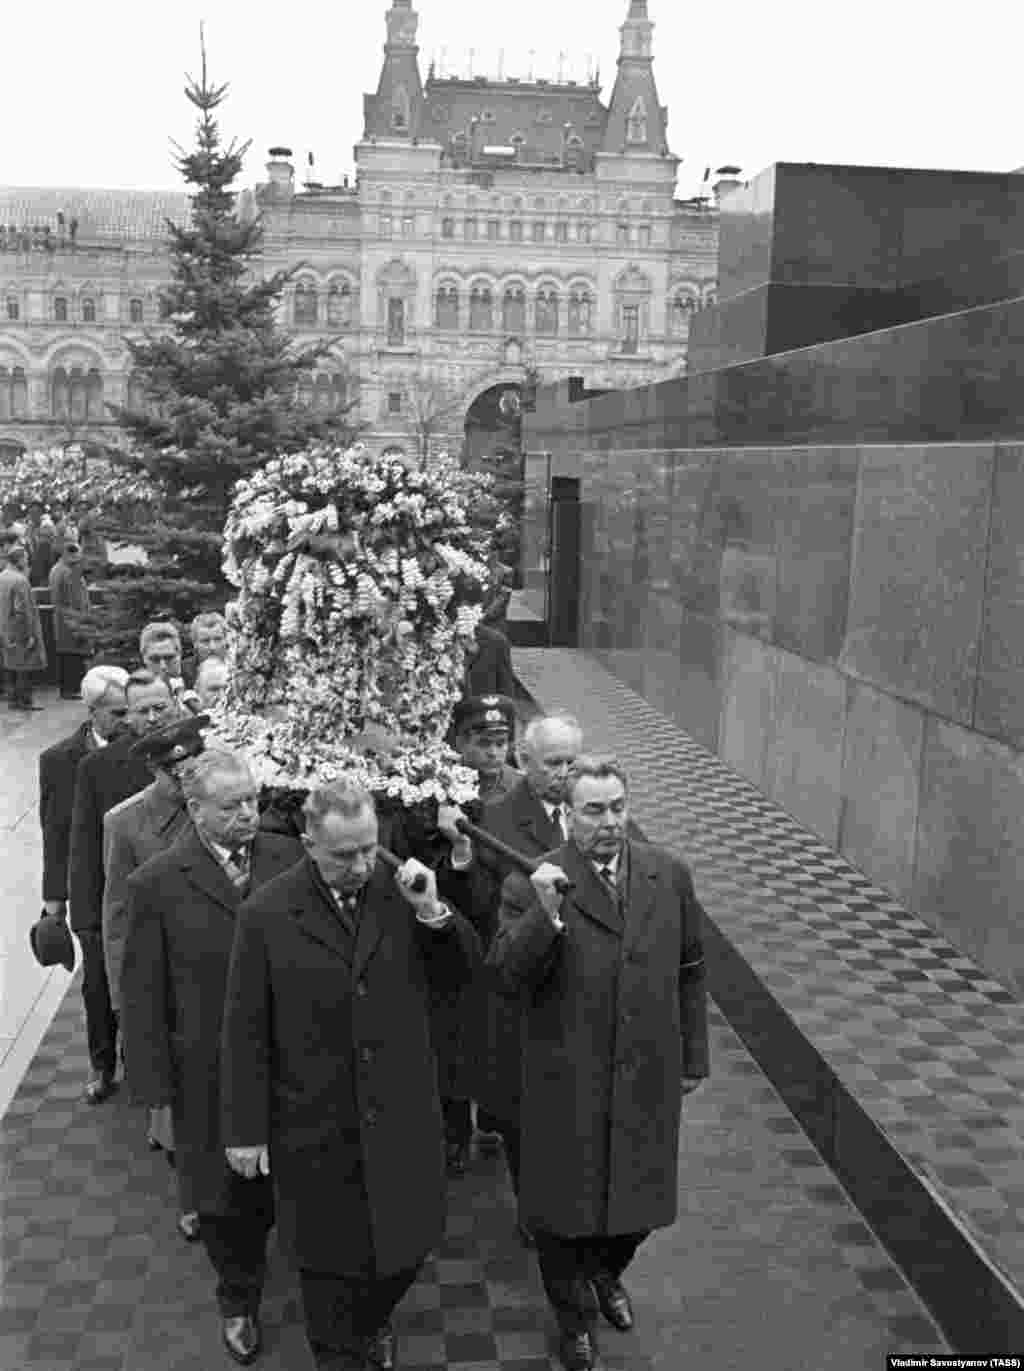 Pallbearers, including Leonid Brezhnev (front right), the general-secretary of the Communist Party, and Premier Aleksei Kosygin (front left), carried the urn containing Gagarin's ashes.